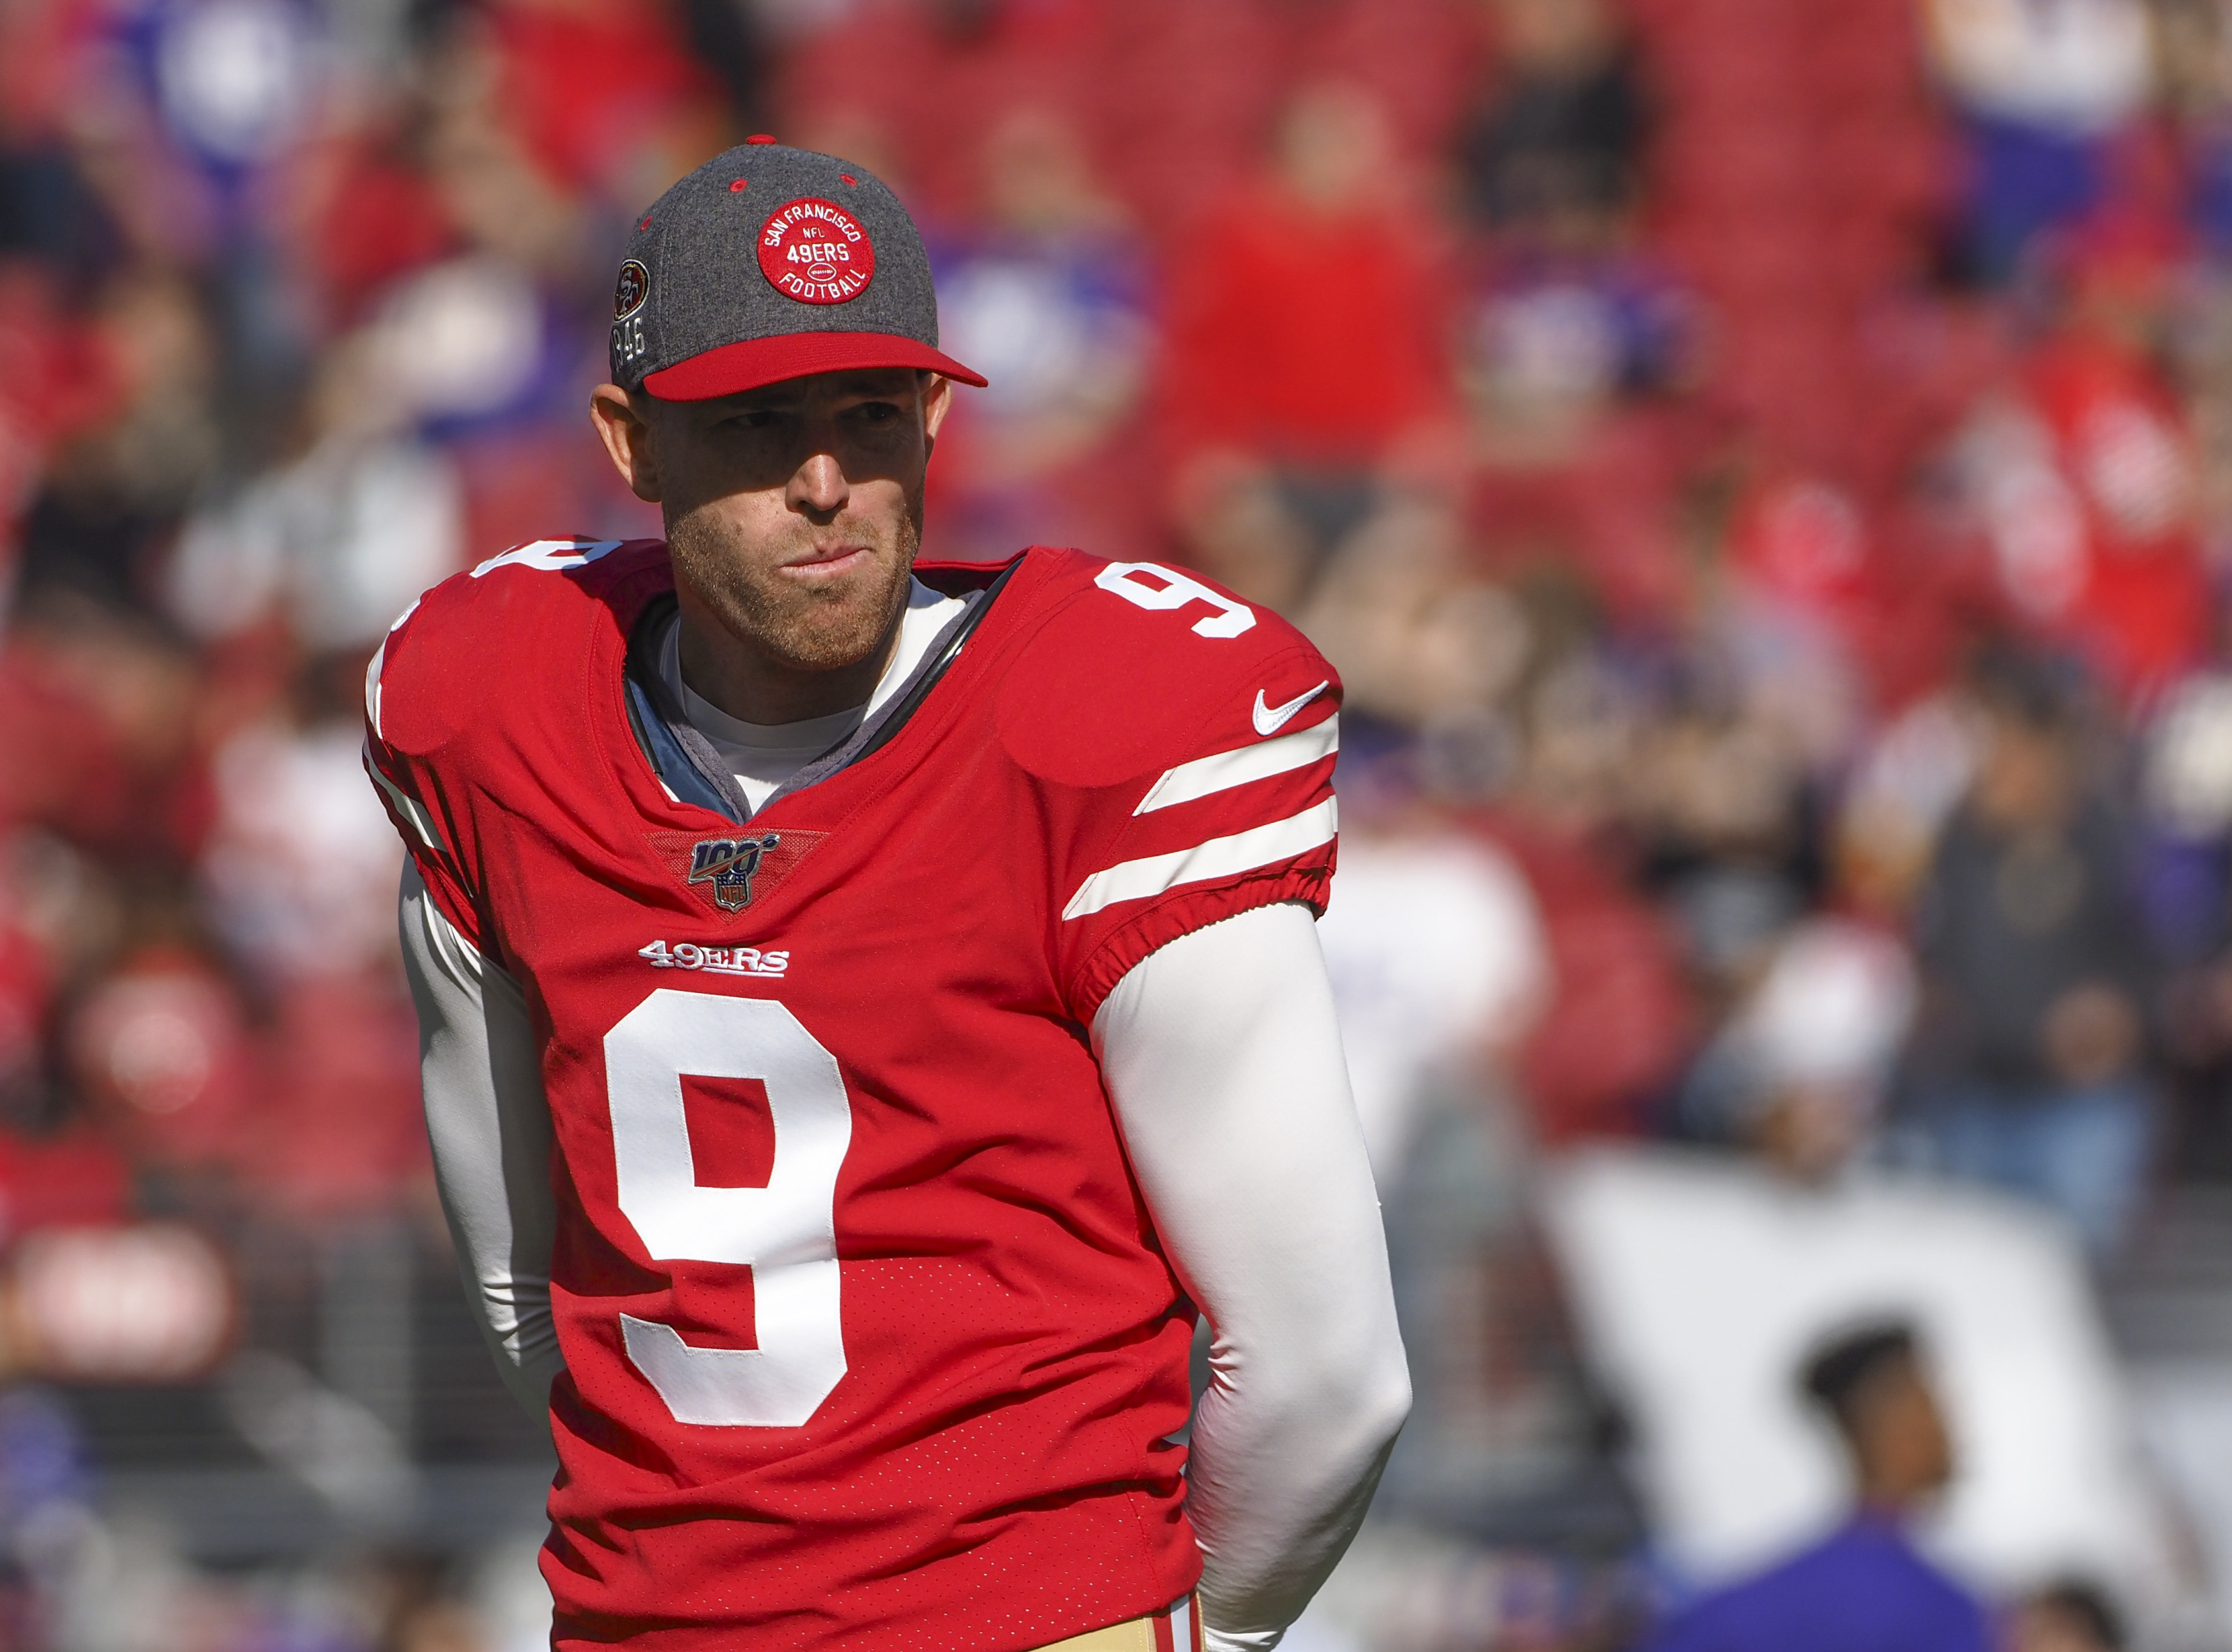 SF 49ers make mistake by retaining Robbie Gould